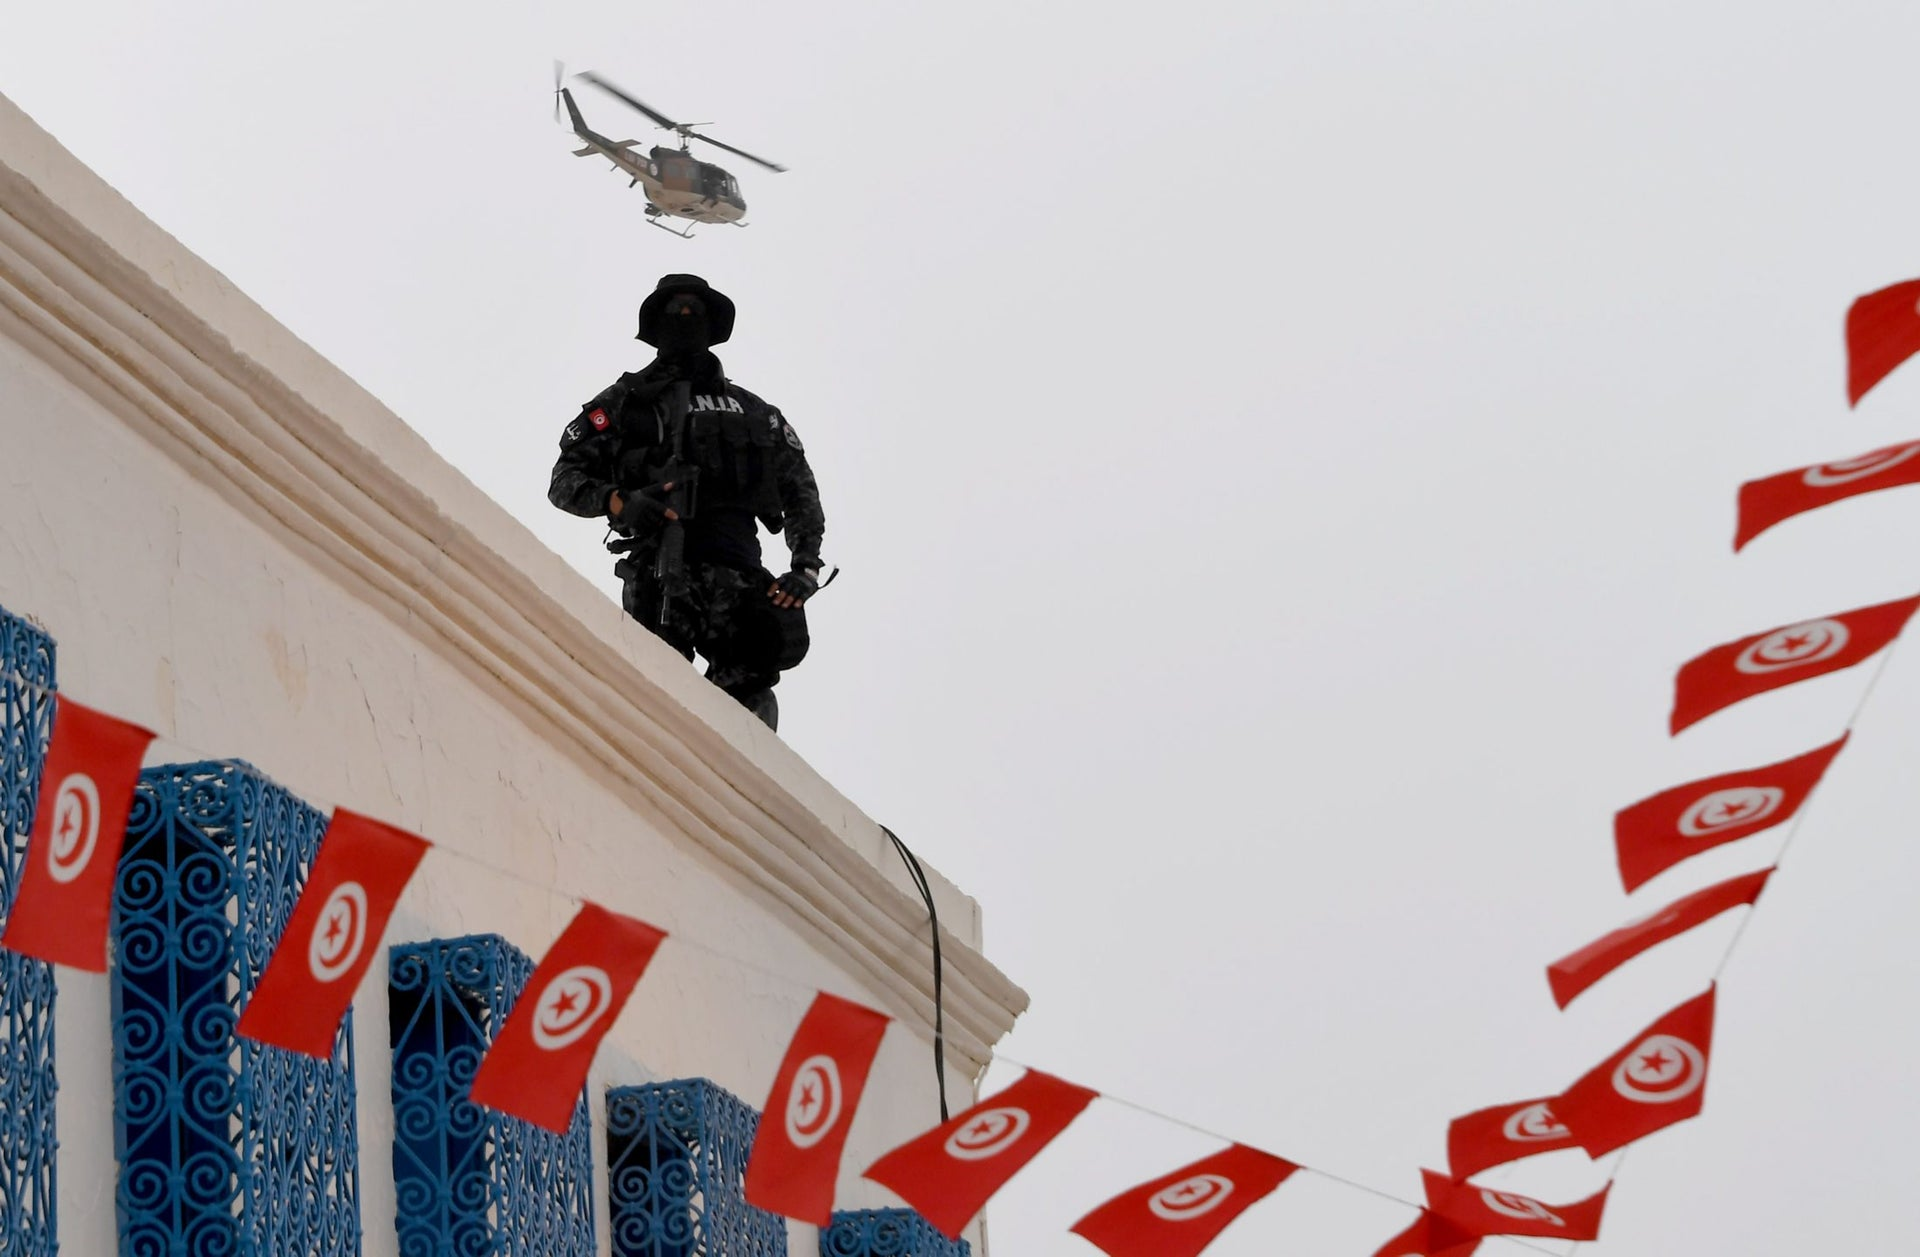 Tunisian special forces stand guard outside the Ghriba synagogue on the Tunisian resort island of Djerba on May 12, 2017 during the first day of the annual Jewish pilgrimage to the synagogue on the Mediterranean resort island of Djerba.